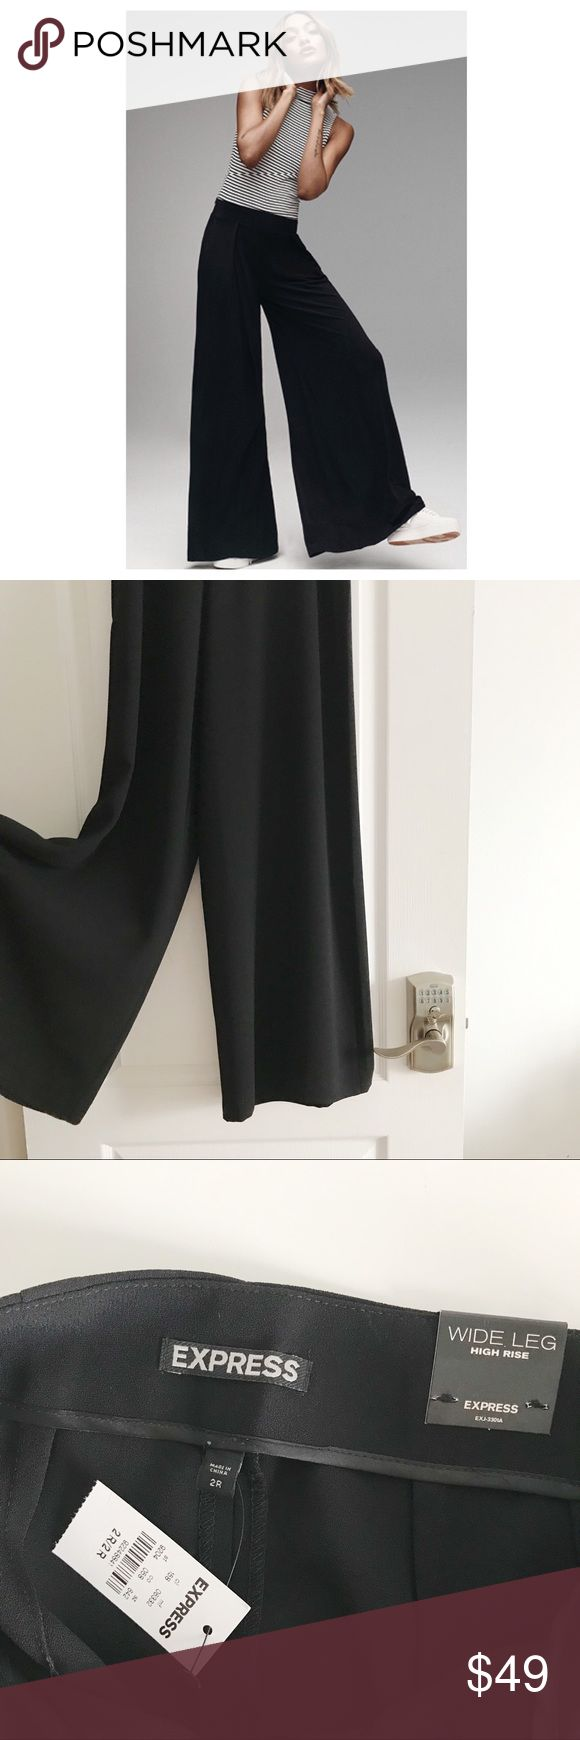 """Express High-Waisted Wide Leg Black Trouser Women's size 2R • Run big, the length an inch or two too long for me but good with a heel  [I'm 5'3""""] • No pockets :( • Never been worn, tags attached • Firmer price Express Pants Wide Leg"""